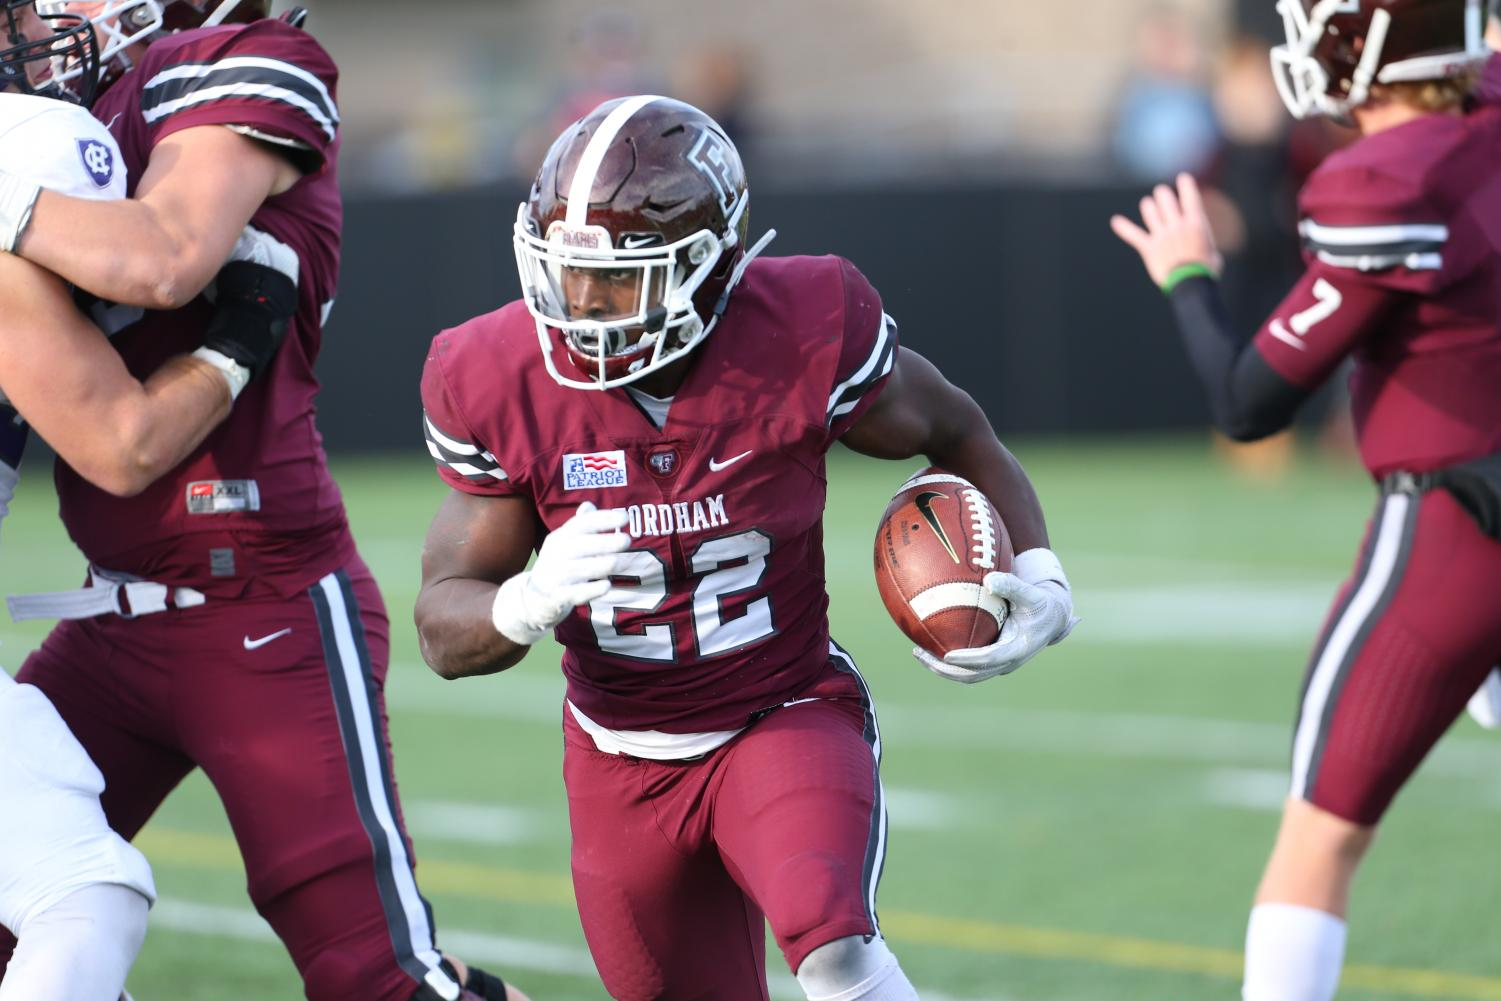 Following his time at Fordham, Edmonds was drafted by the Arizona Cardinals in the 2018 NFL Draft.